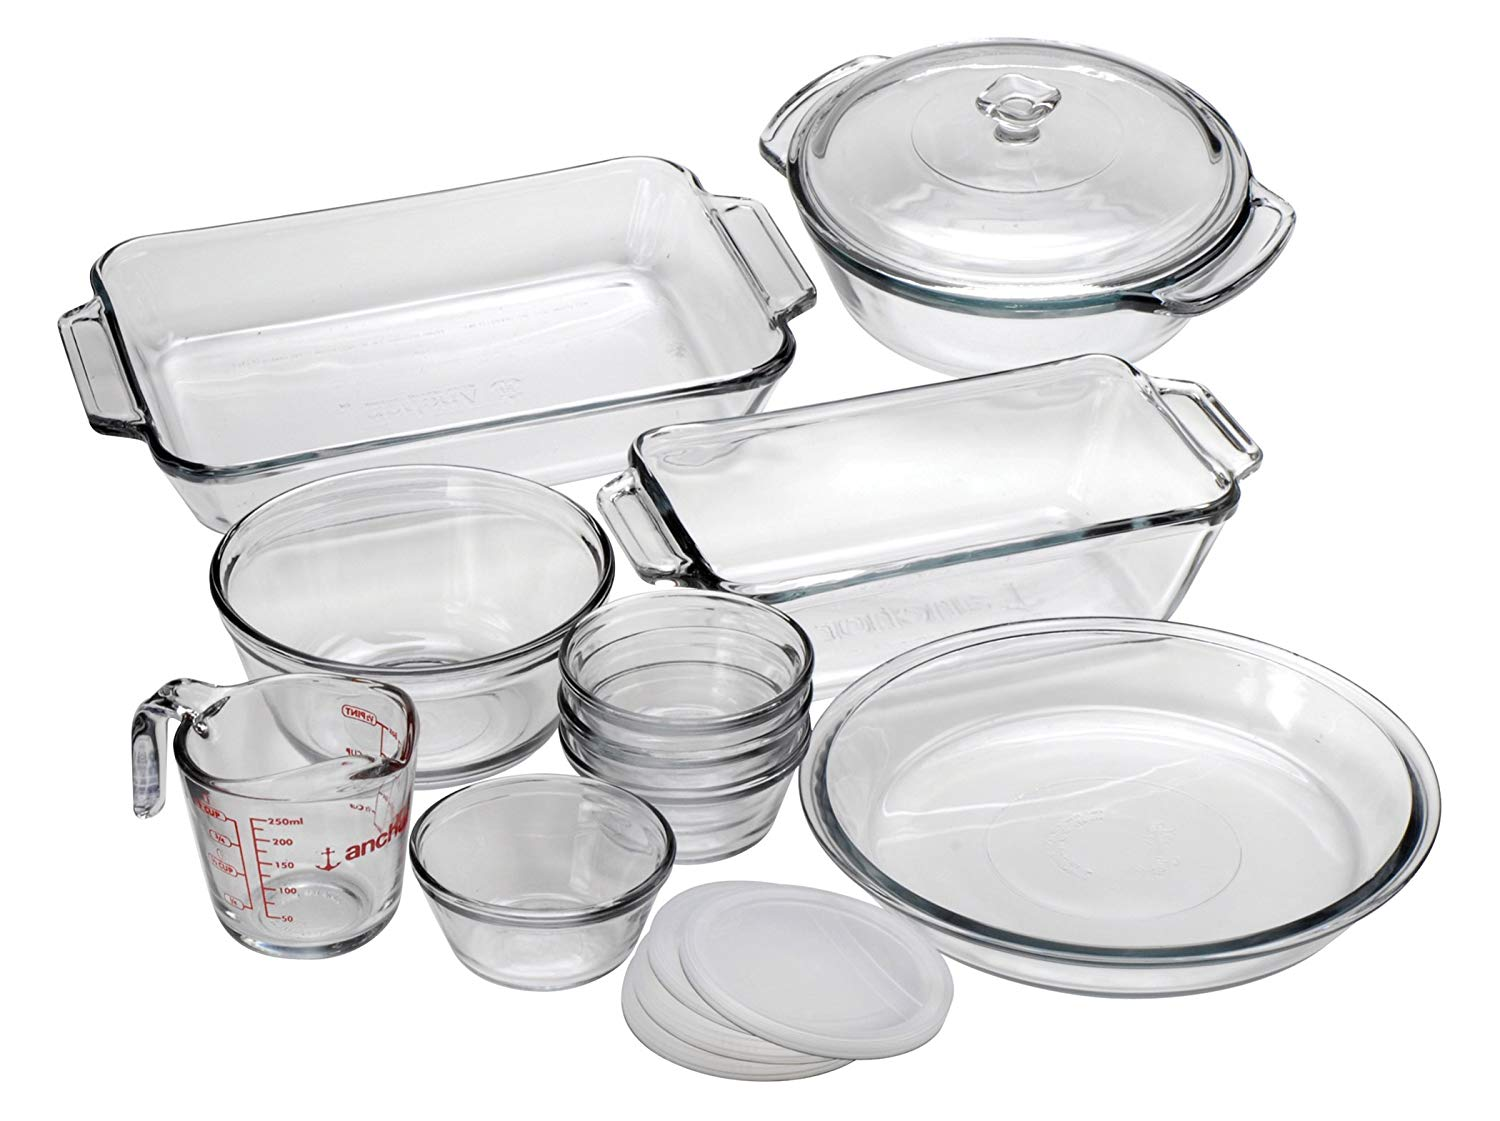 5 Best Bakeware Sets